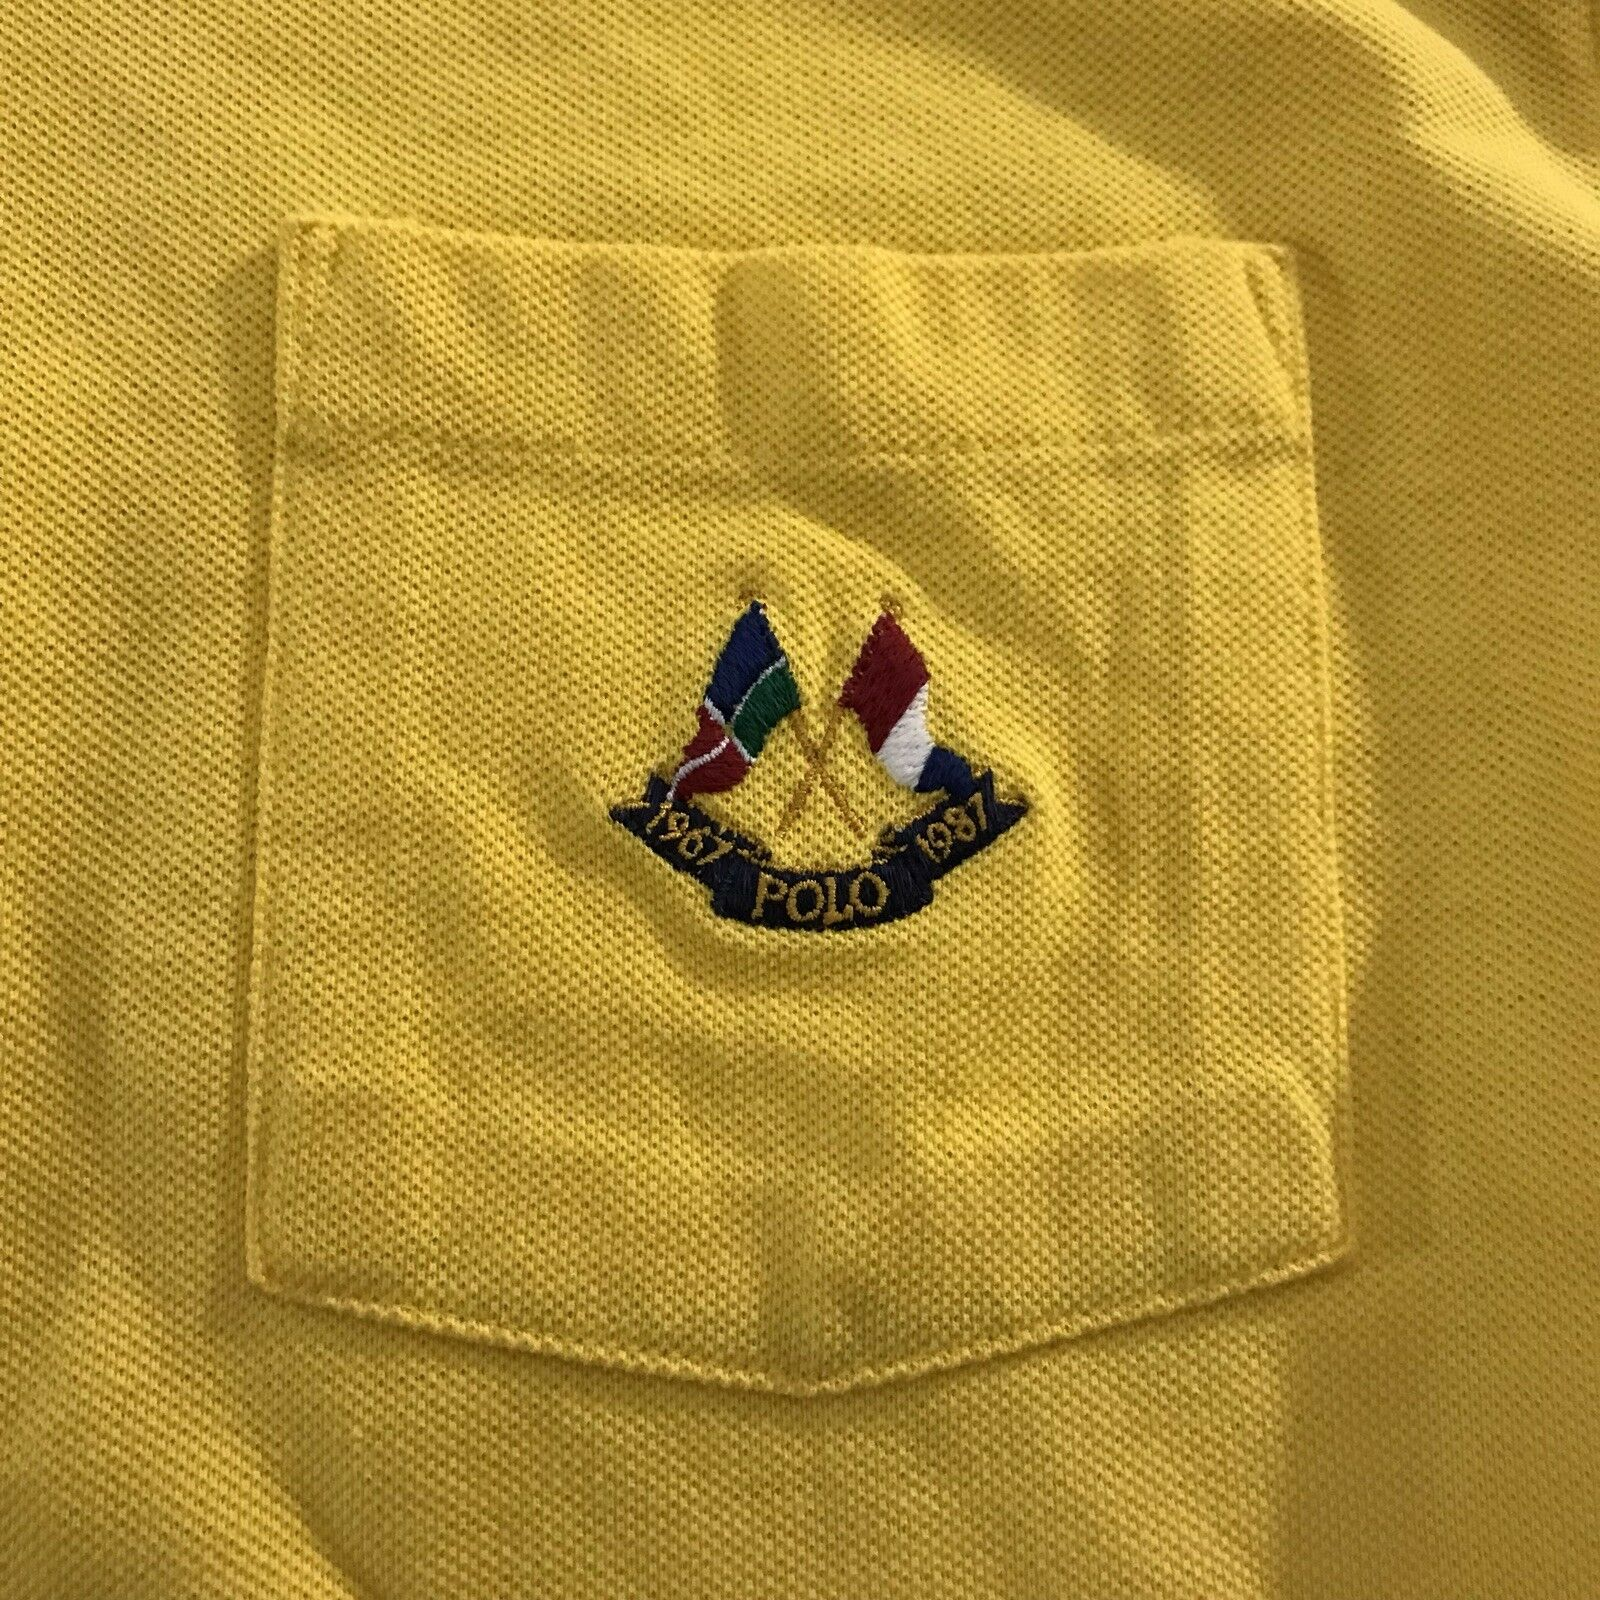 VTG Polo Ralph Lauren 1987 Cross Flags 20th Anniversary Yellow Long Sleeve Tee M